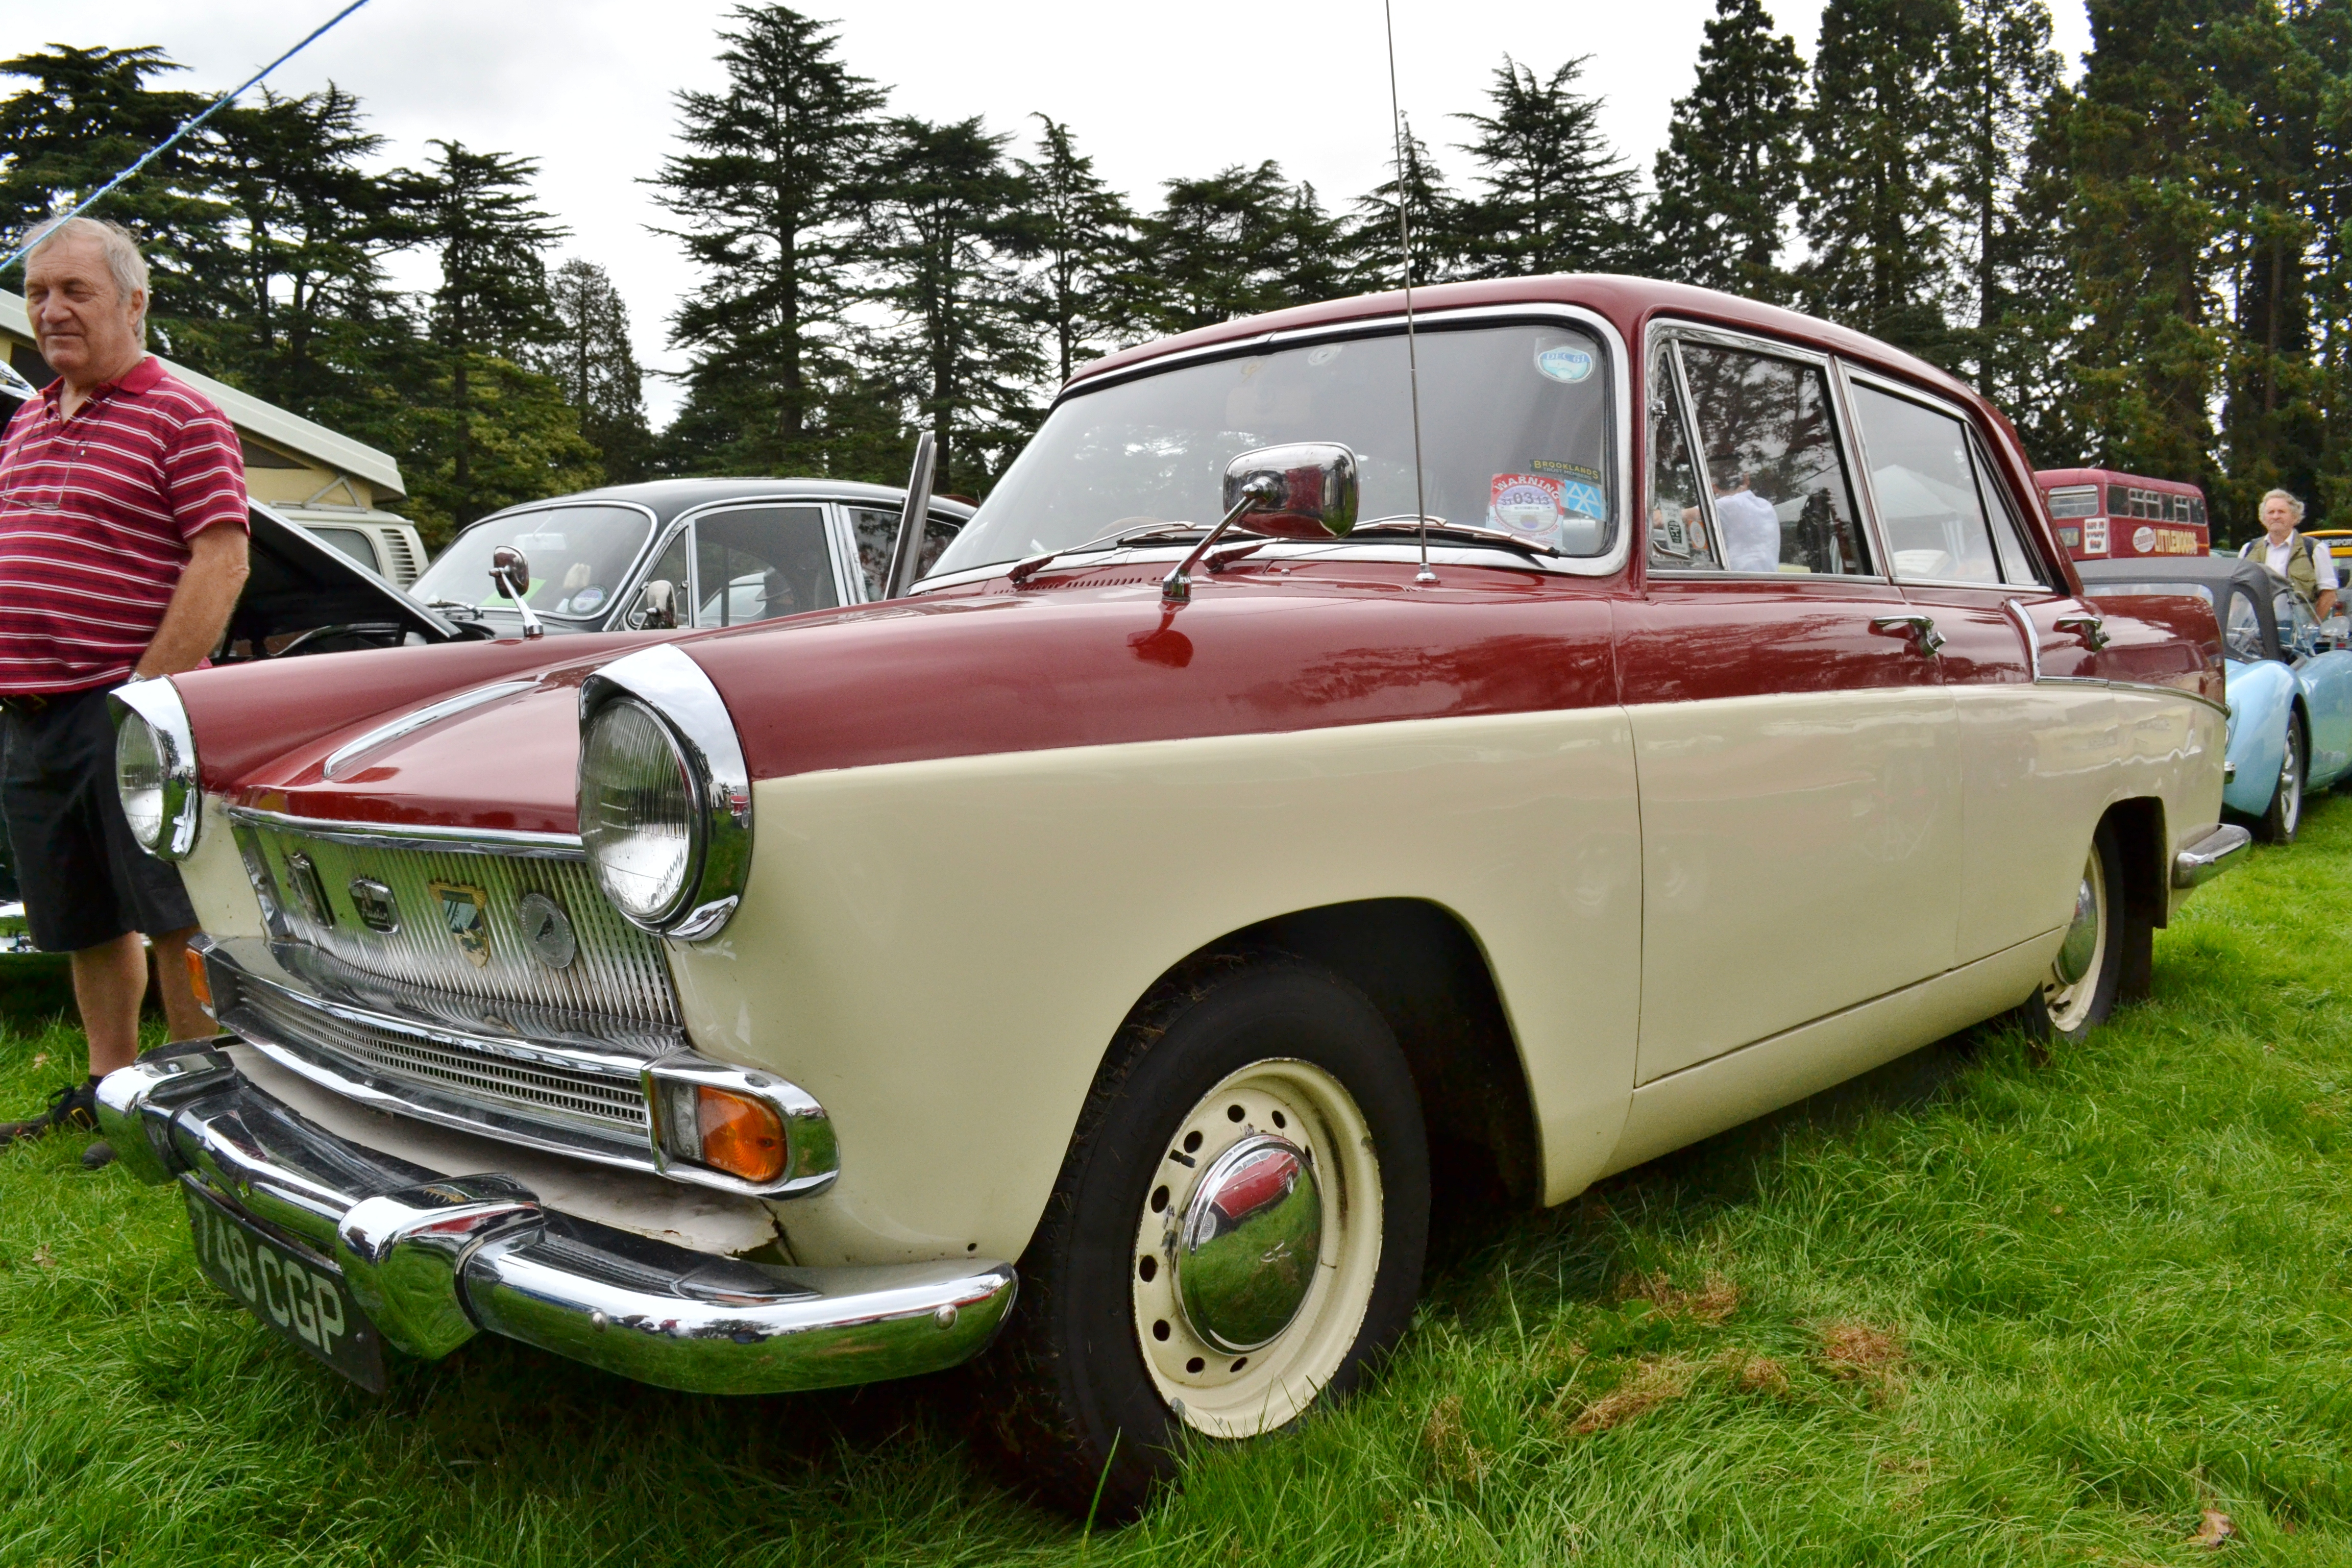 1961 Austin Cambridge A55 Mk2 | Flickr - Photo Sharing!